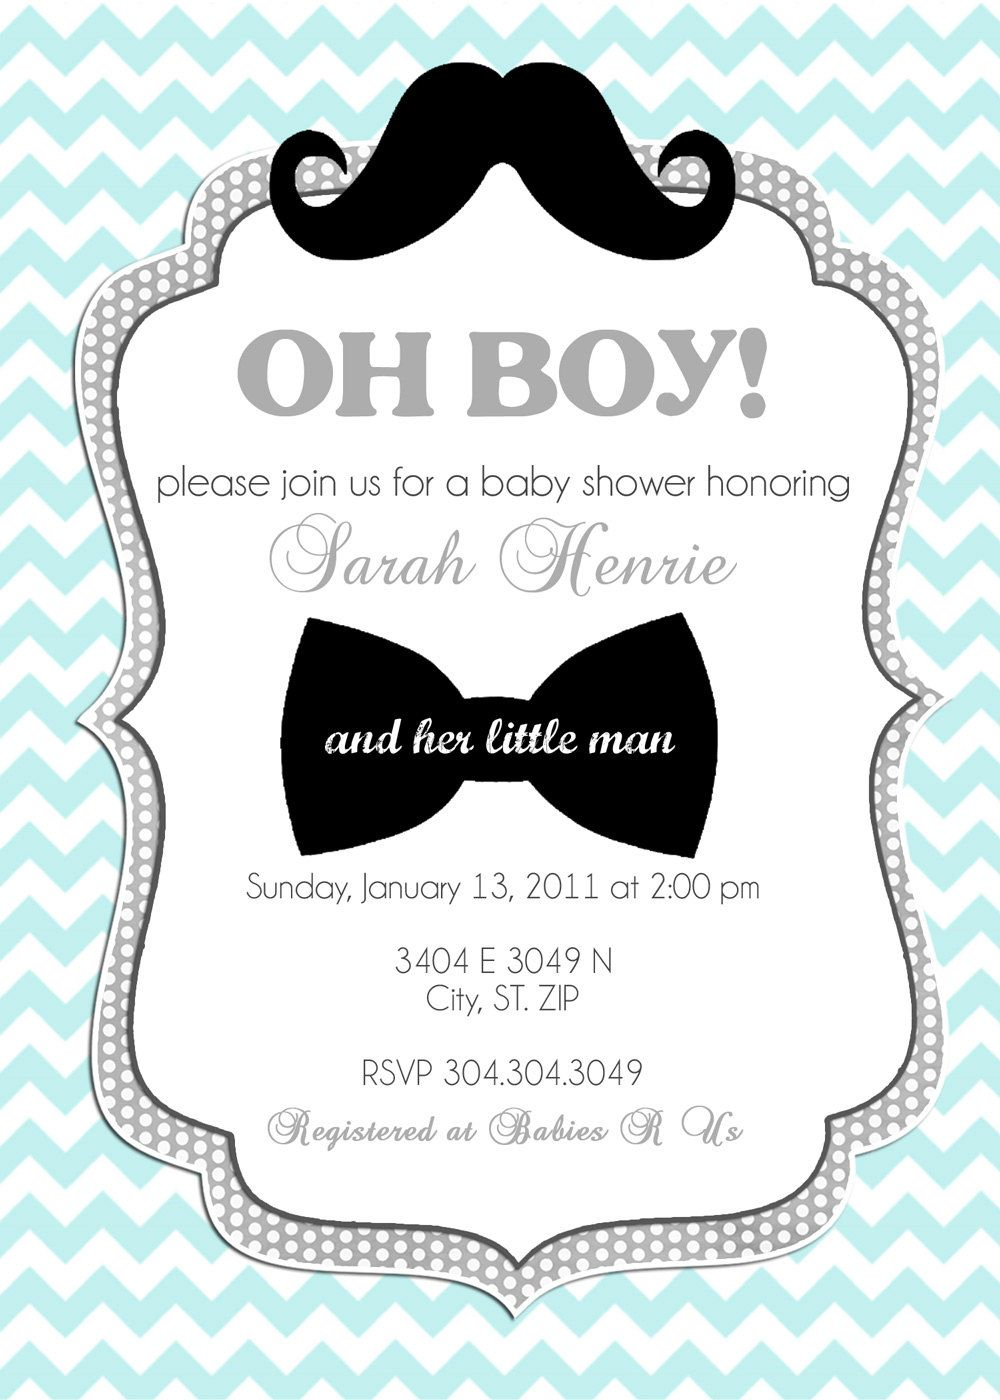 Little Man- Custom Baby Shower Invitation, Bridal Shower Invitation ...